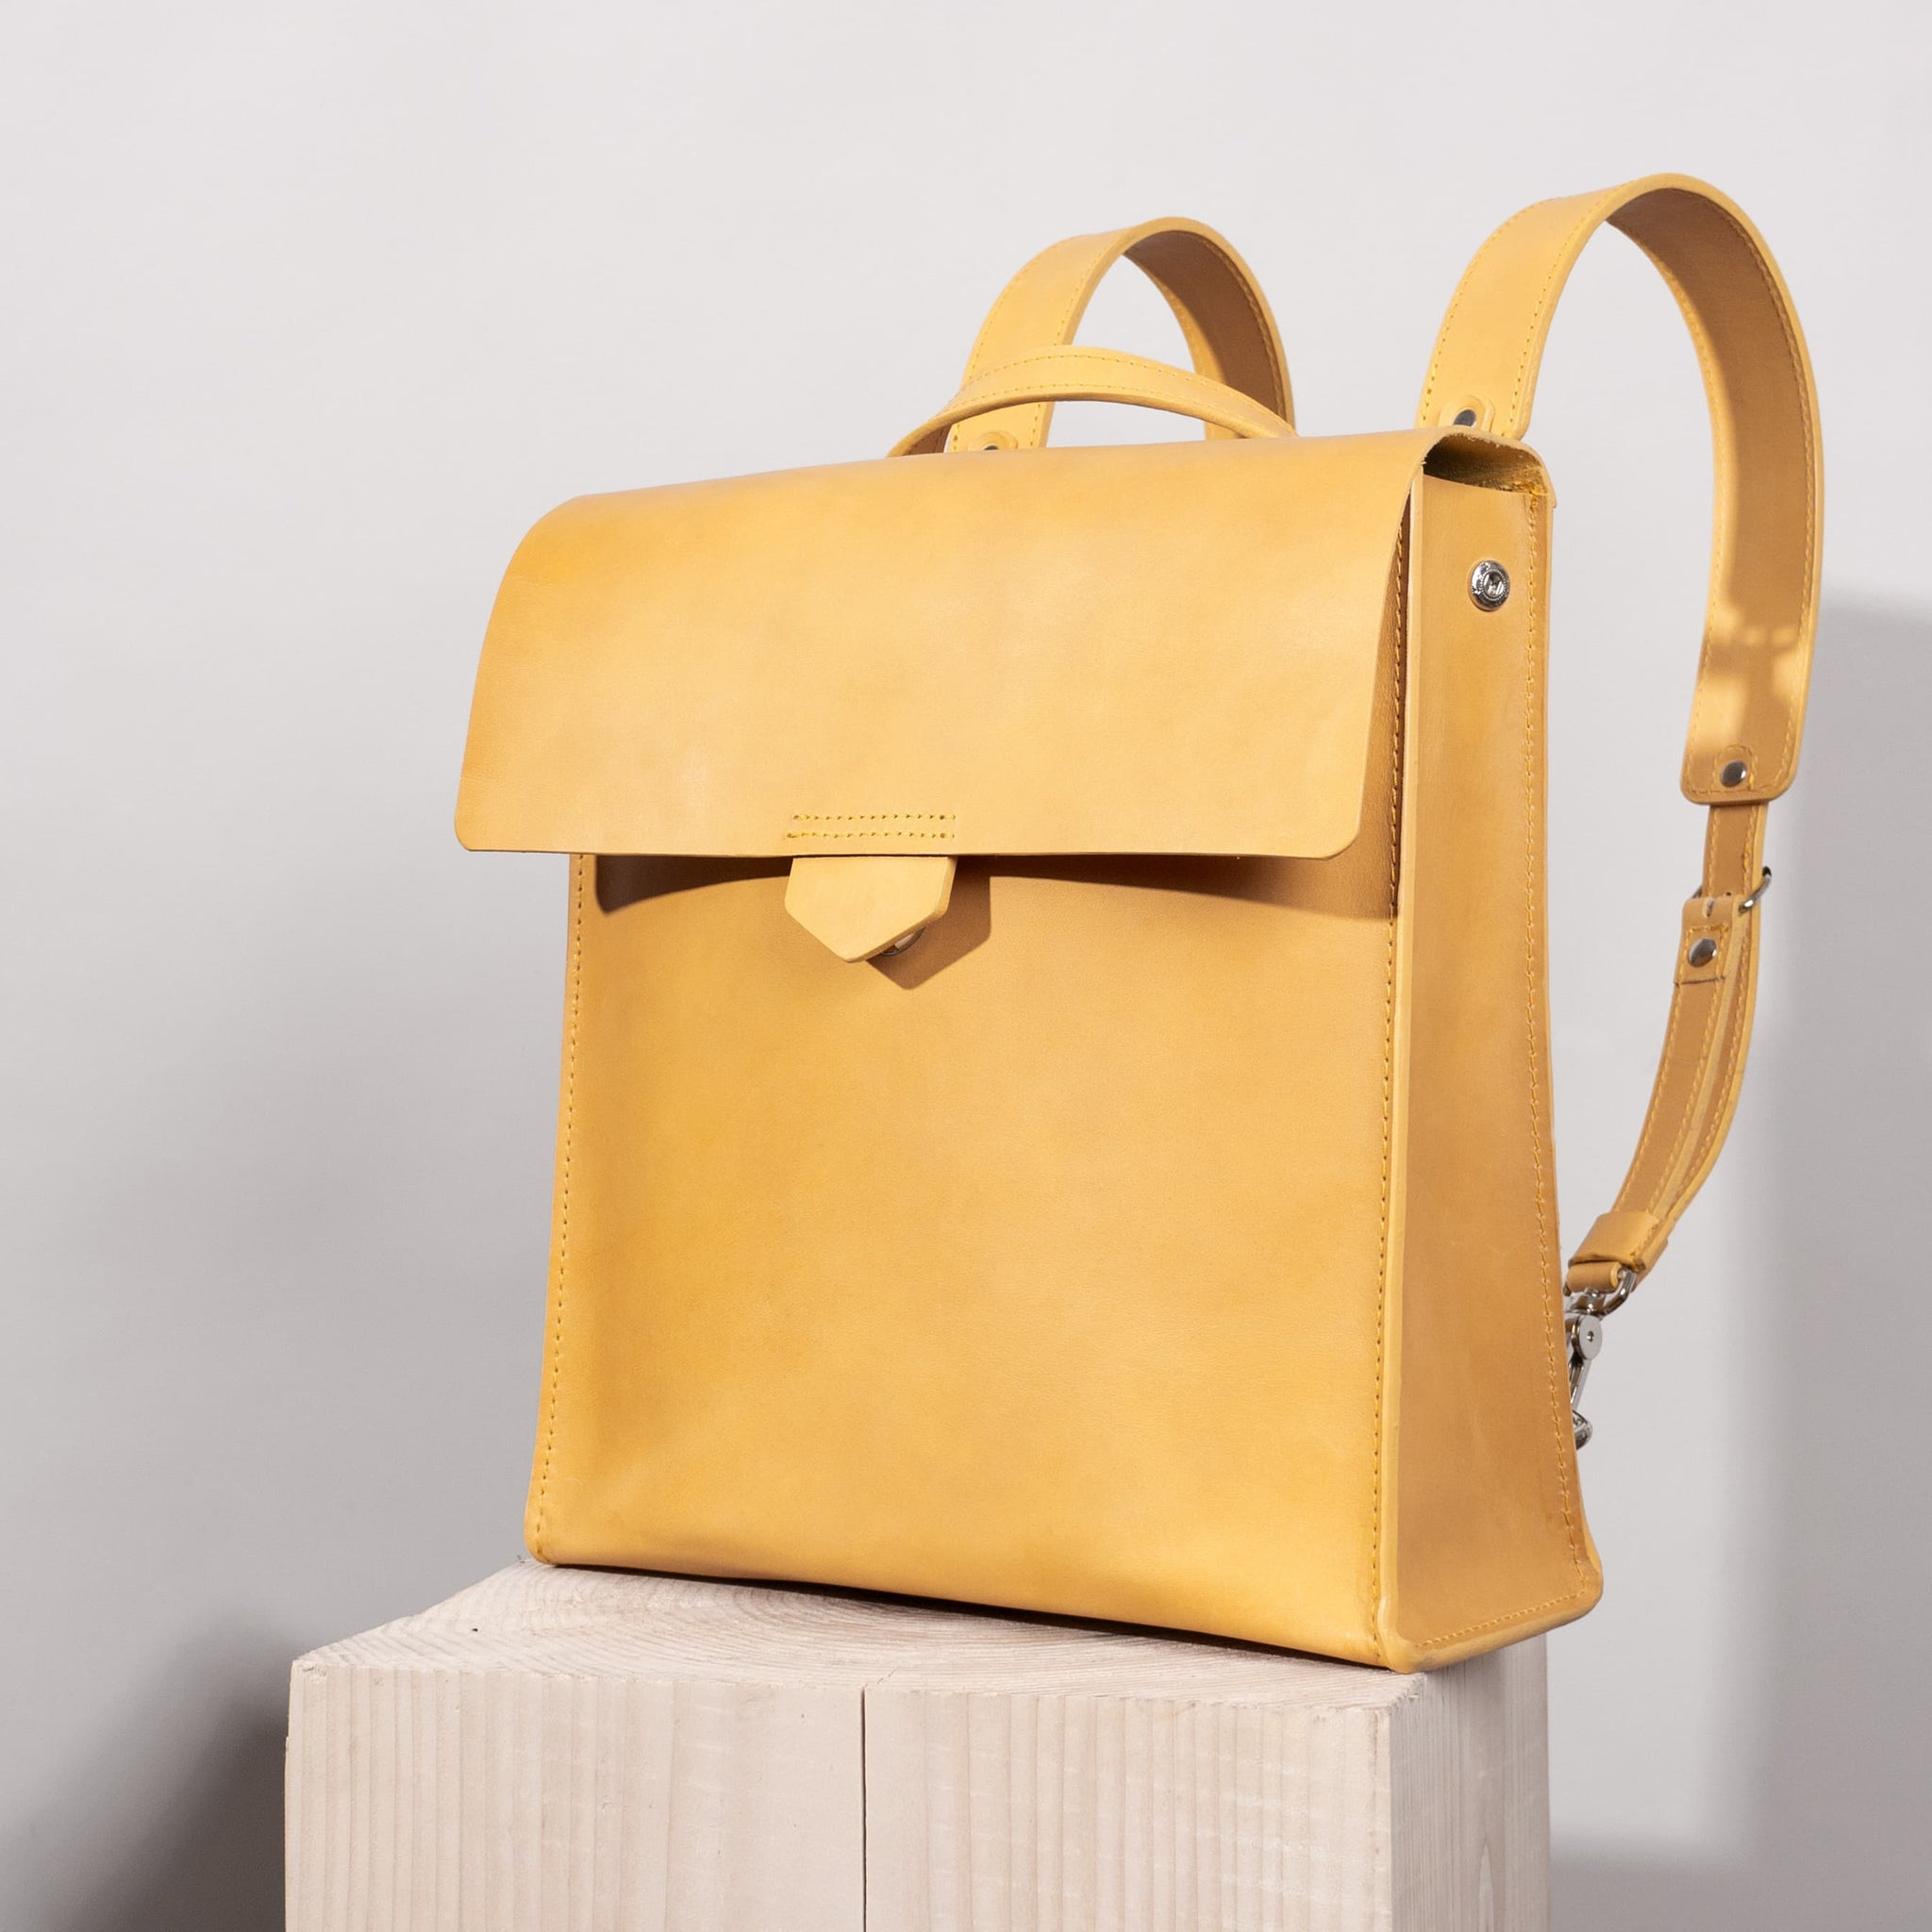 Leather backpack - Fibonacci in mustard yellow color